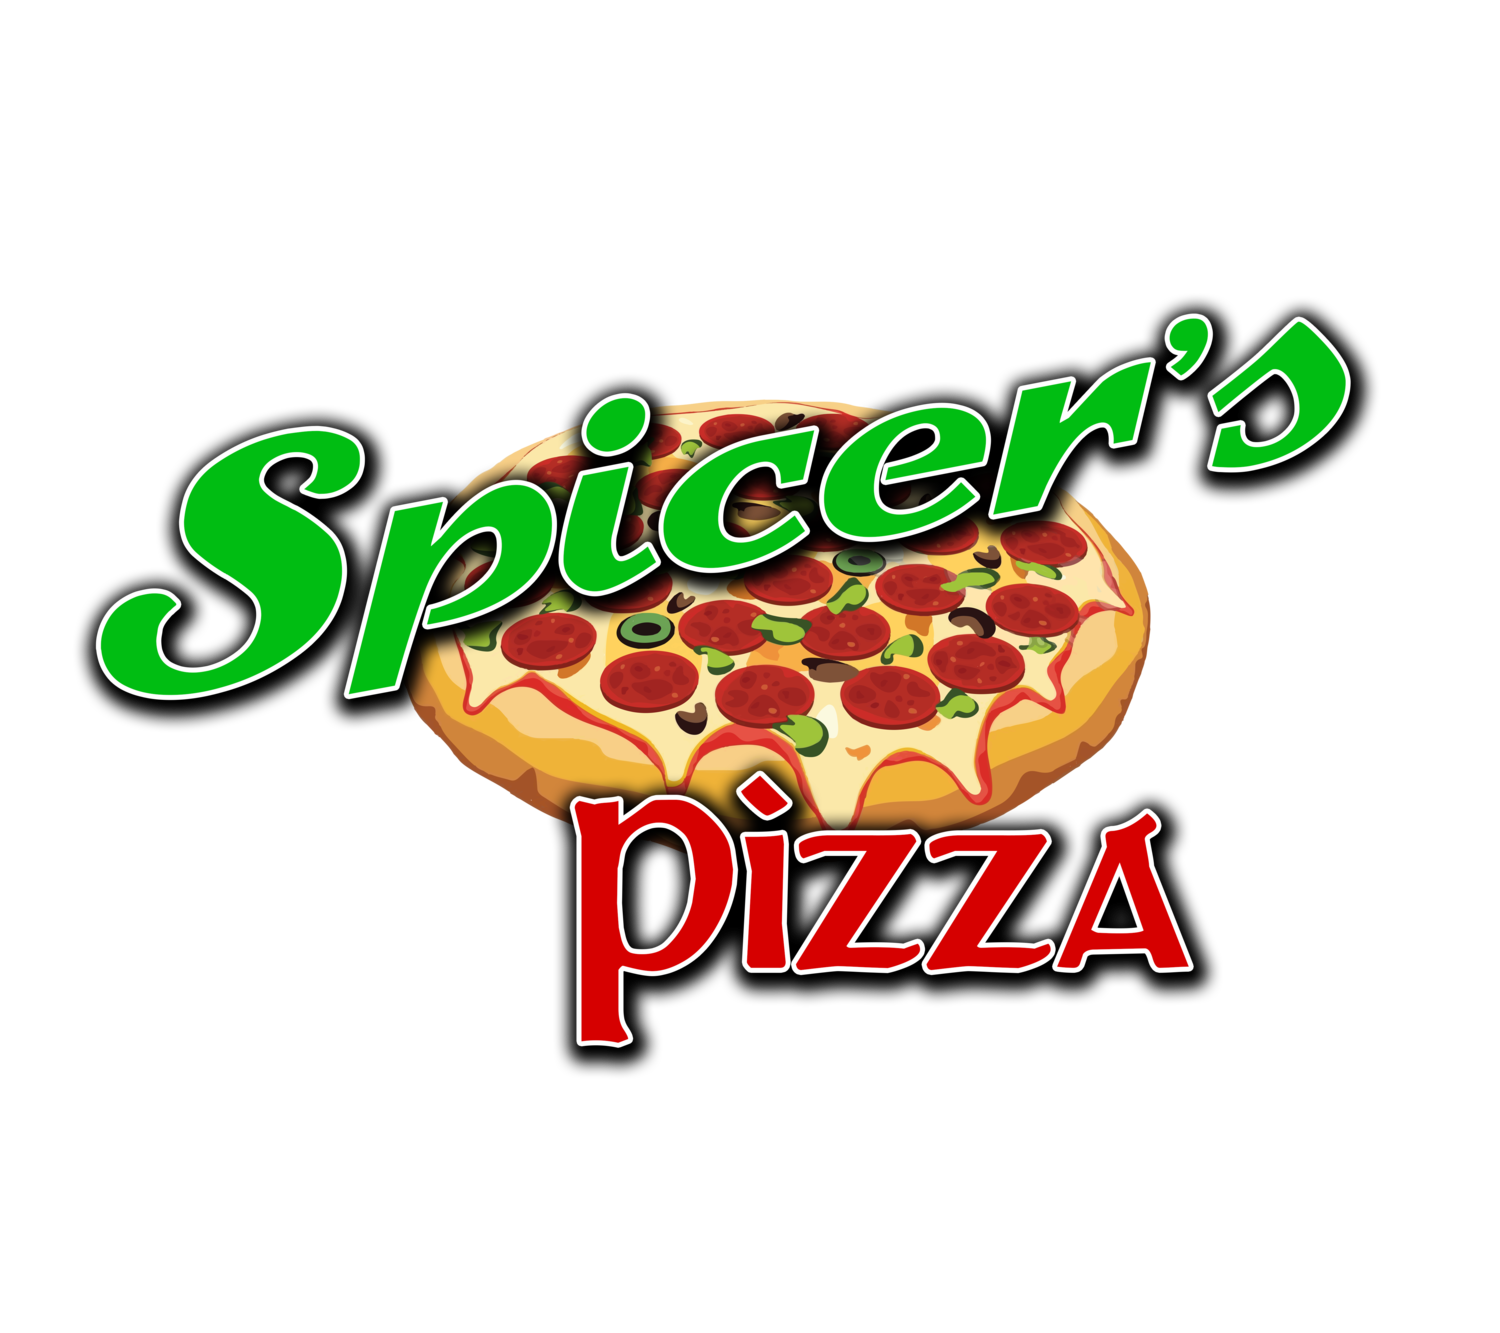 Spicer's Pizza